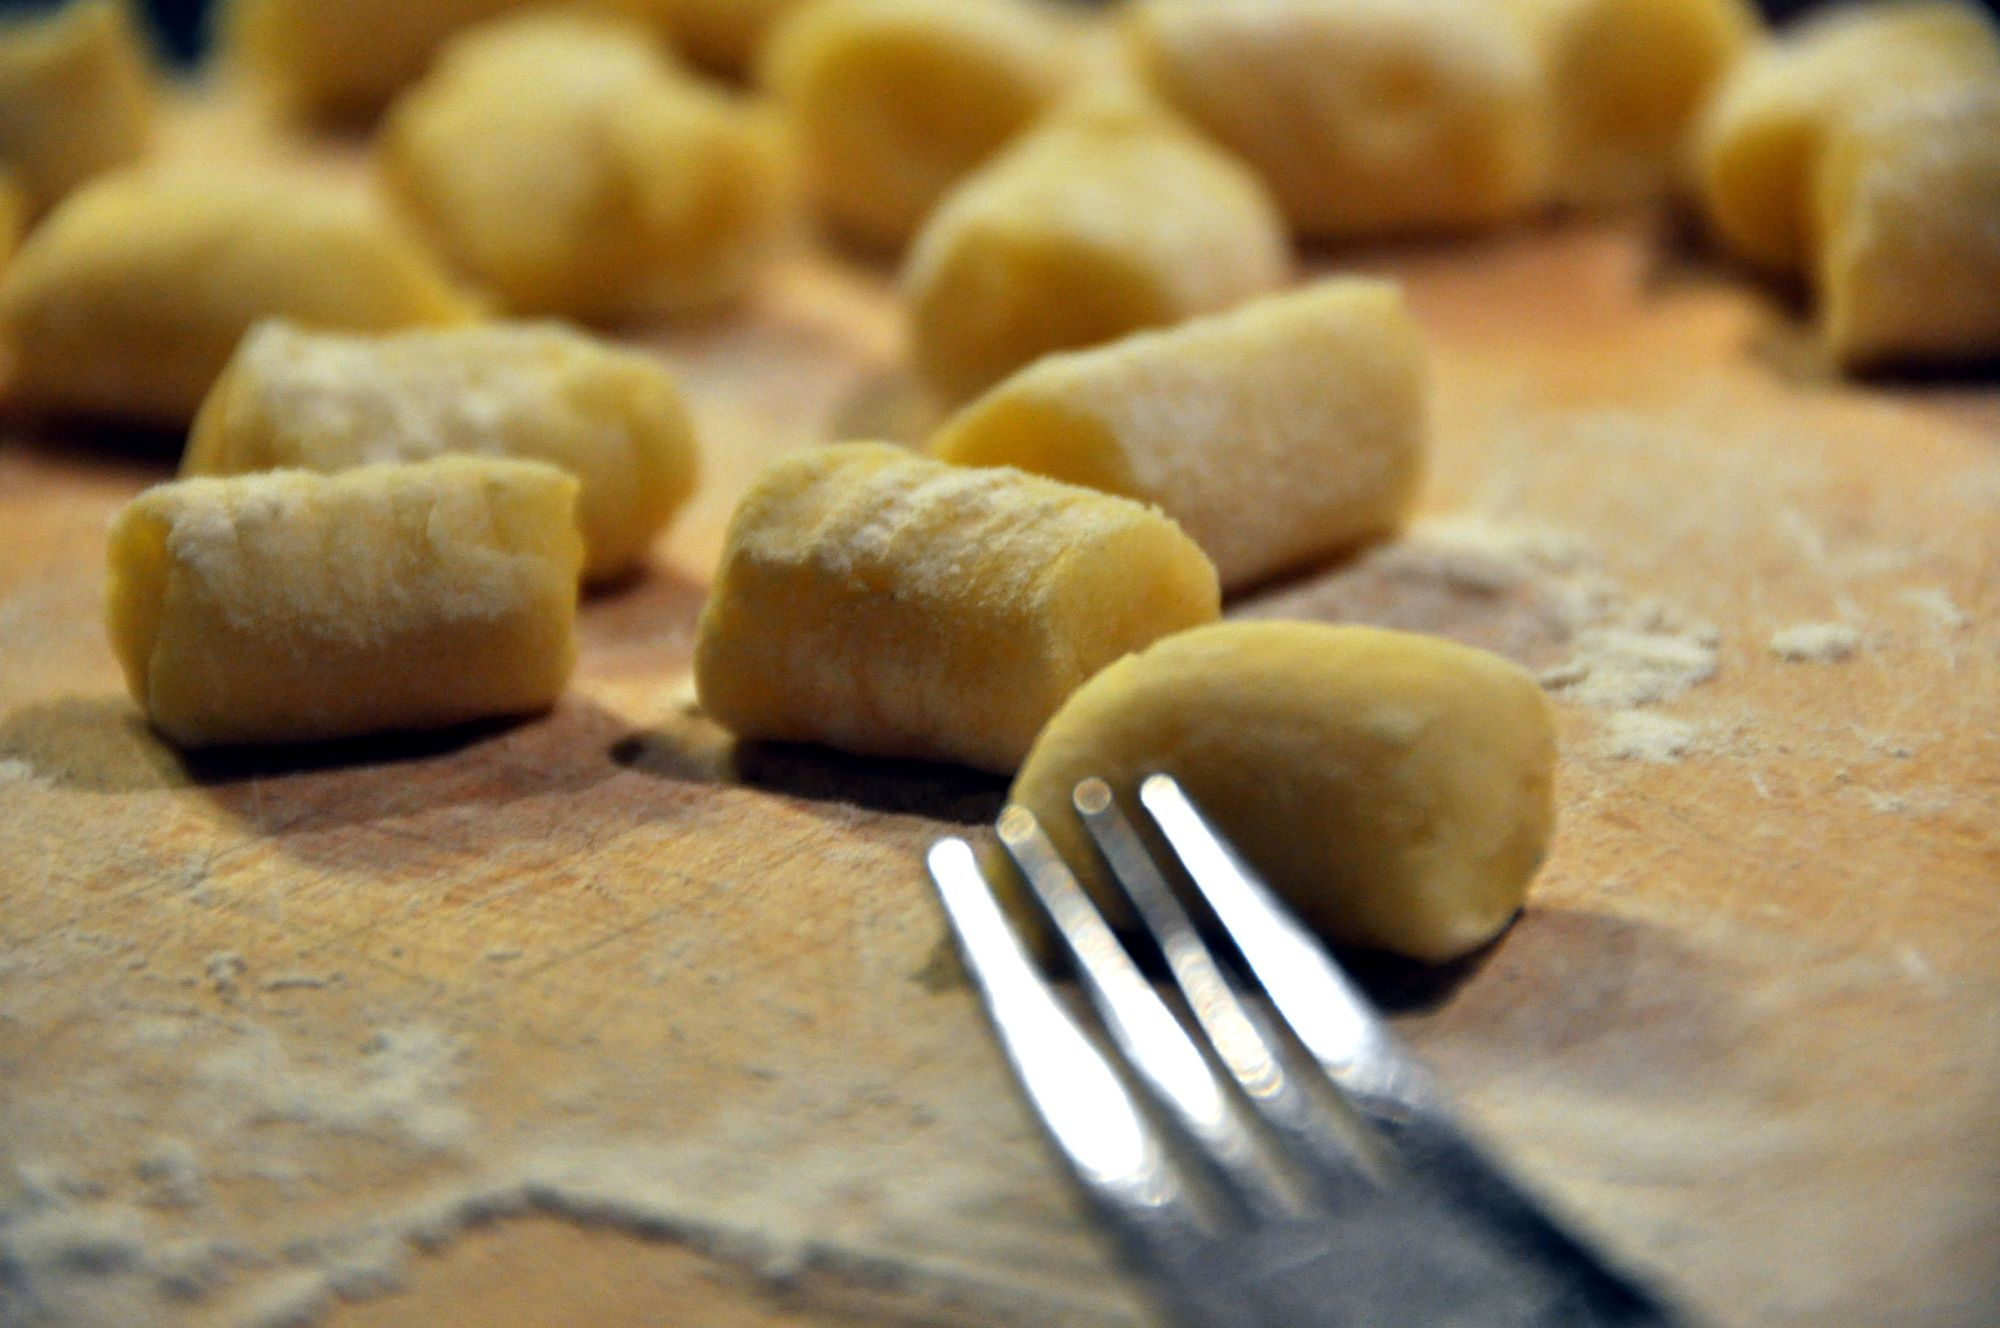 Gnocchi 1.0: storing metrics and resources at scale